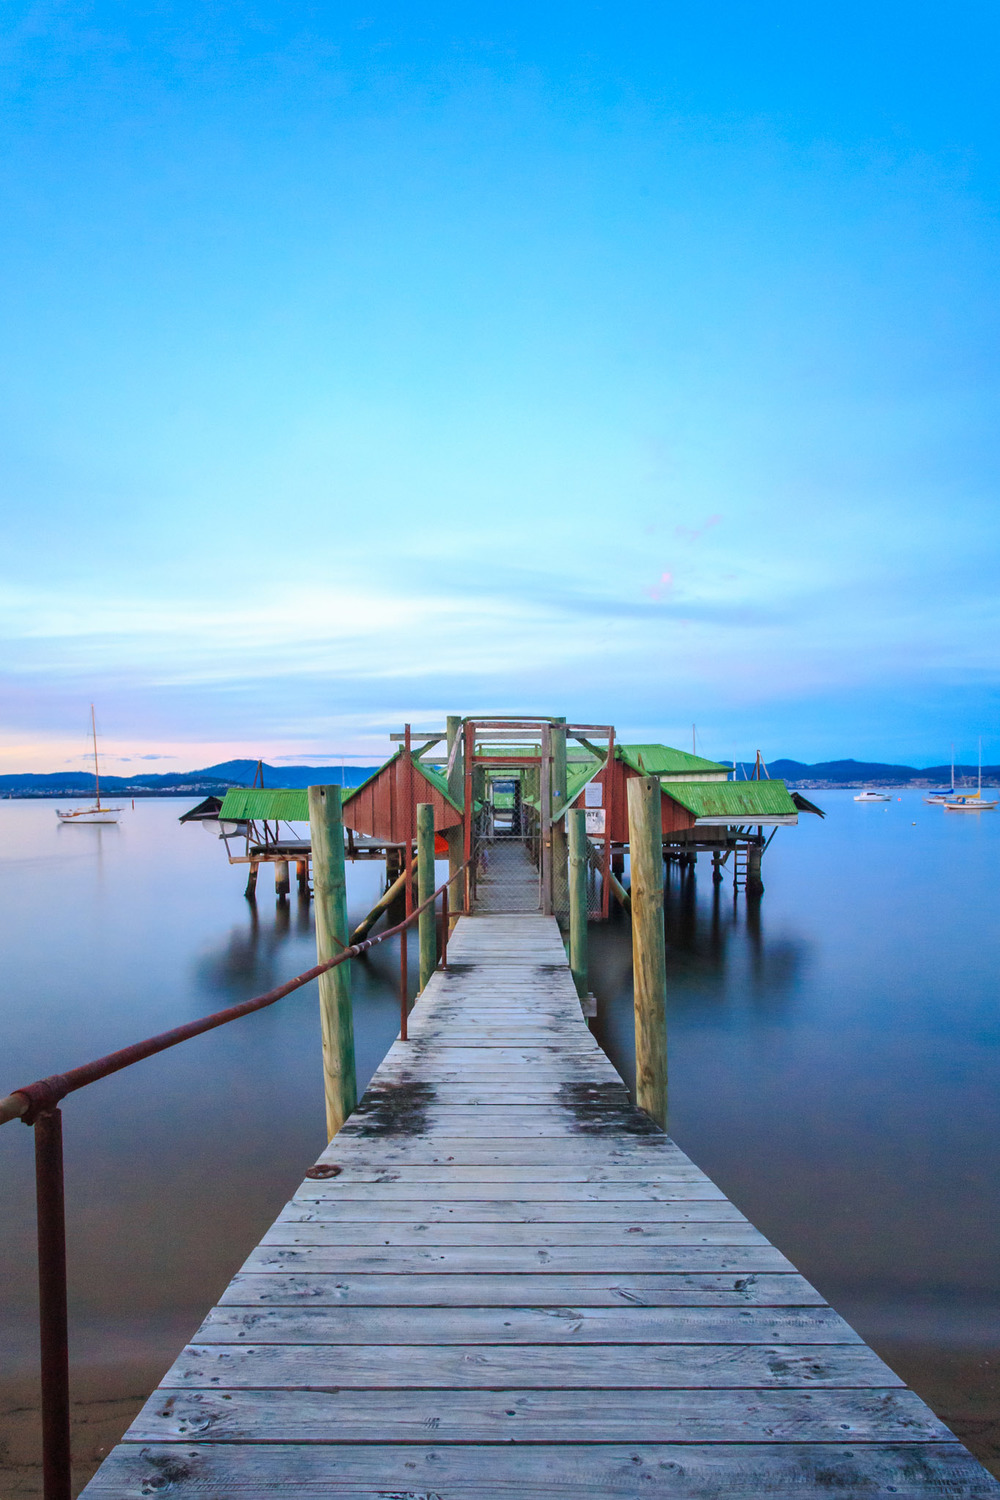 Sandy Bay Boatshed - 15sec @ f9.0 - ISO2000